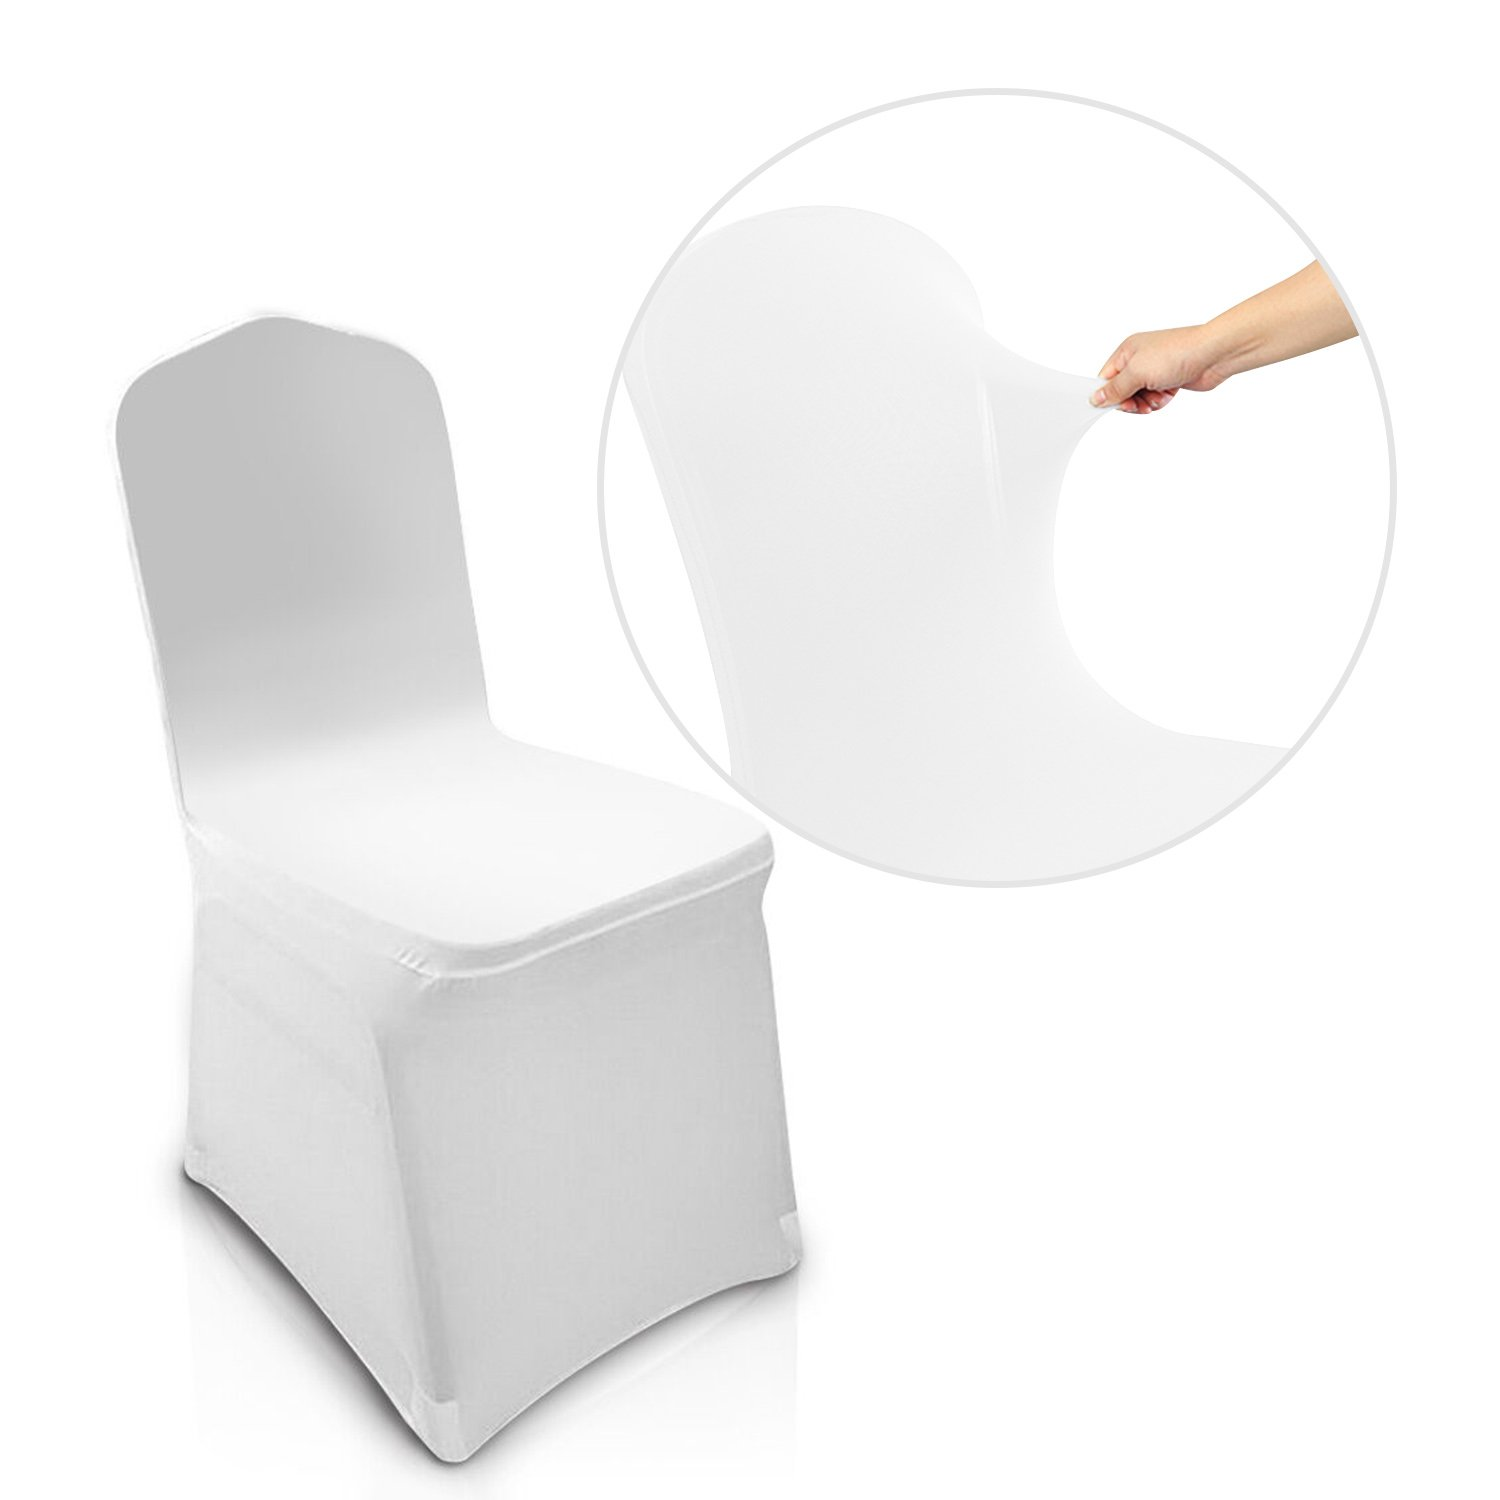 COOCHEER White 100pcs Chair Covers Spandex/Lycra Metal & Plastic Folding Decoration For Wedding, Banquet, Party by COOCHEER